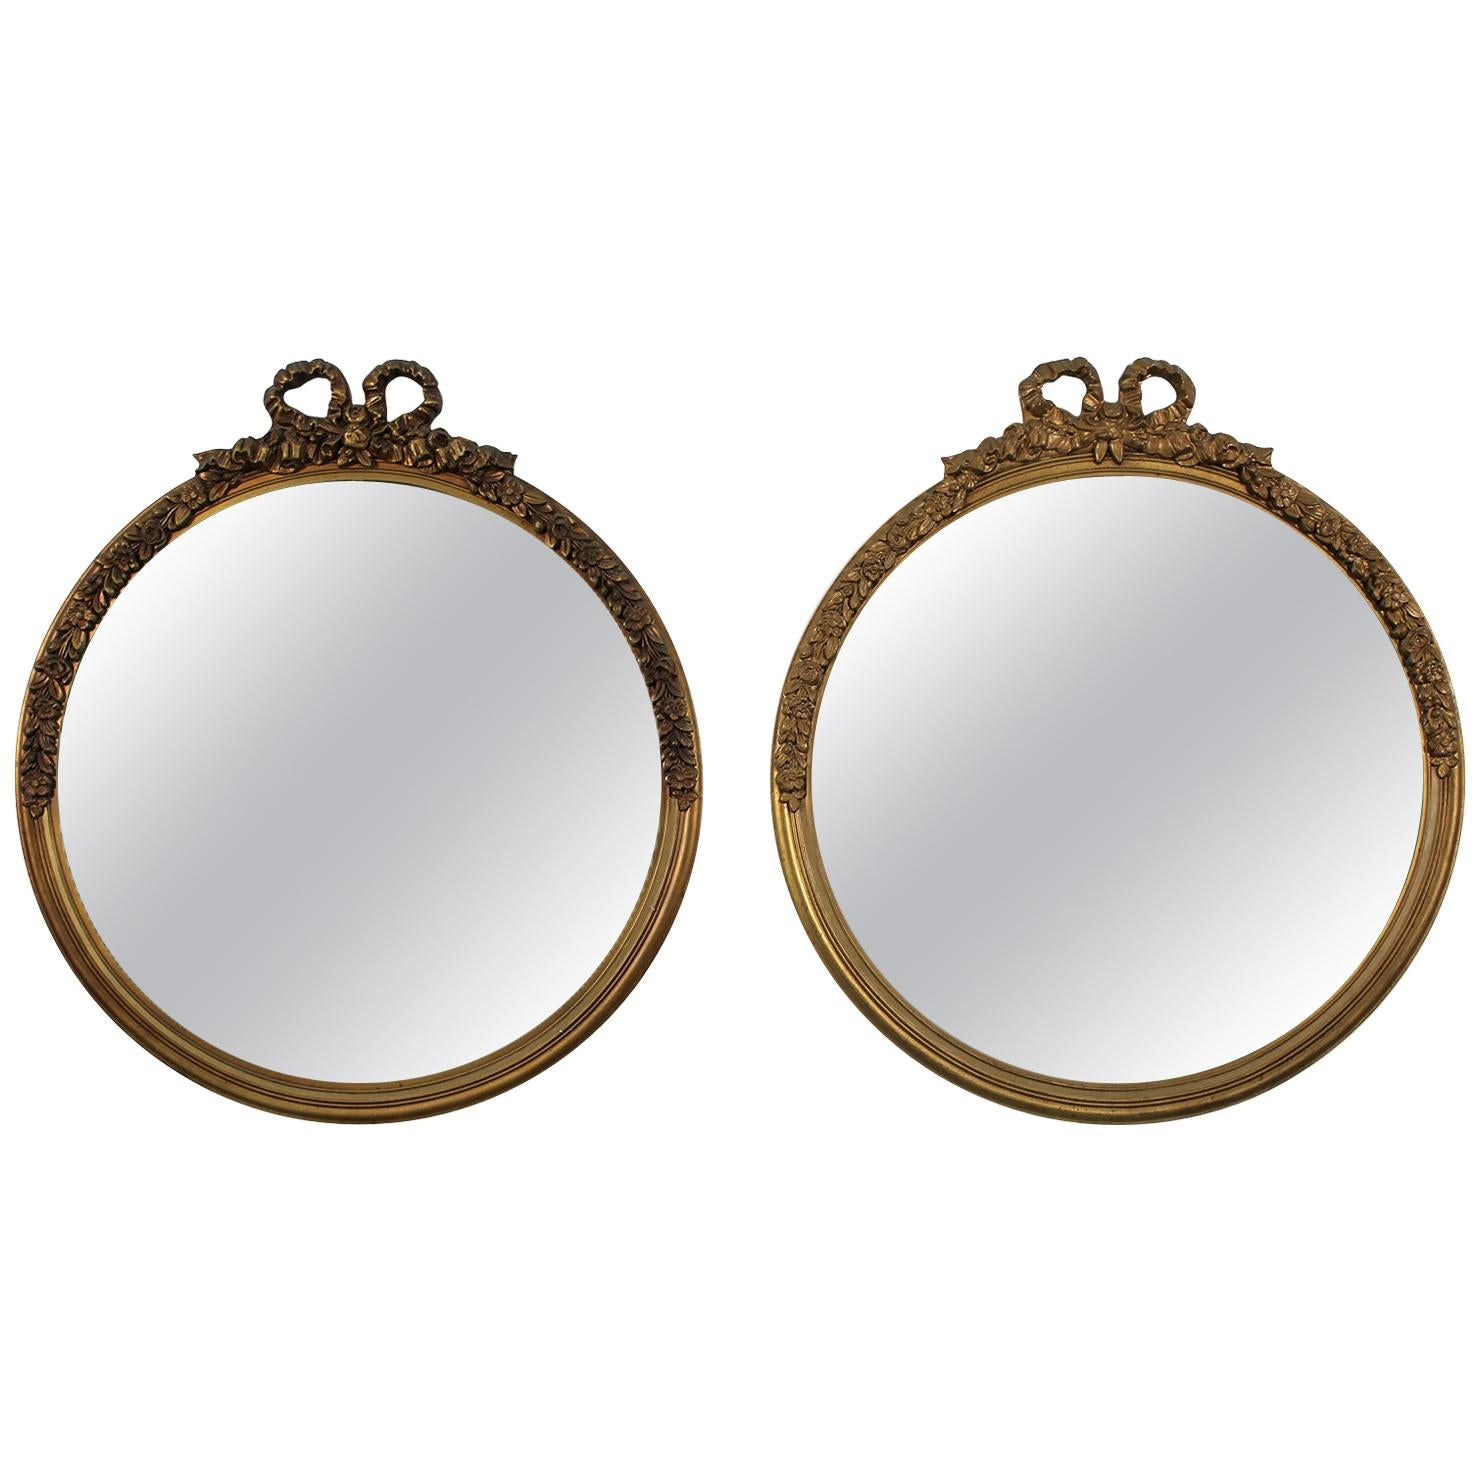 Antique Pair of Gold Gilt Hand Carved Wood French Baroque Style Mirror